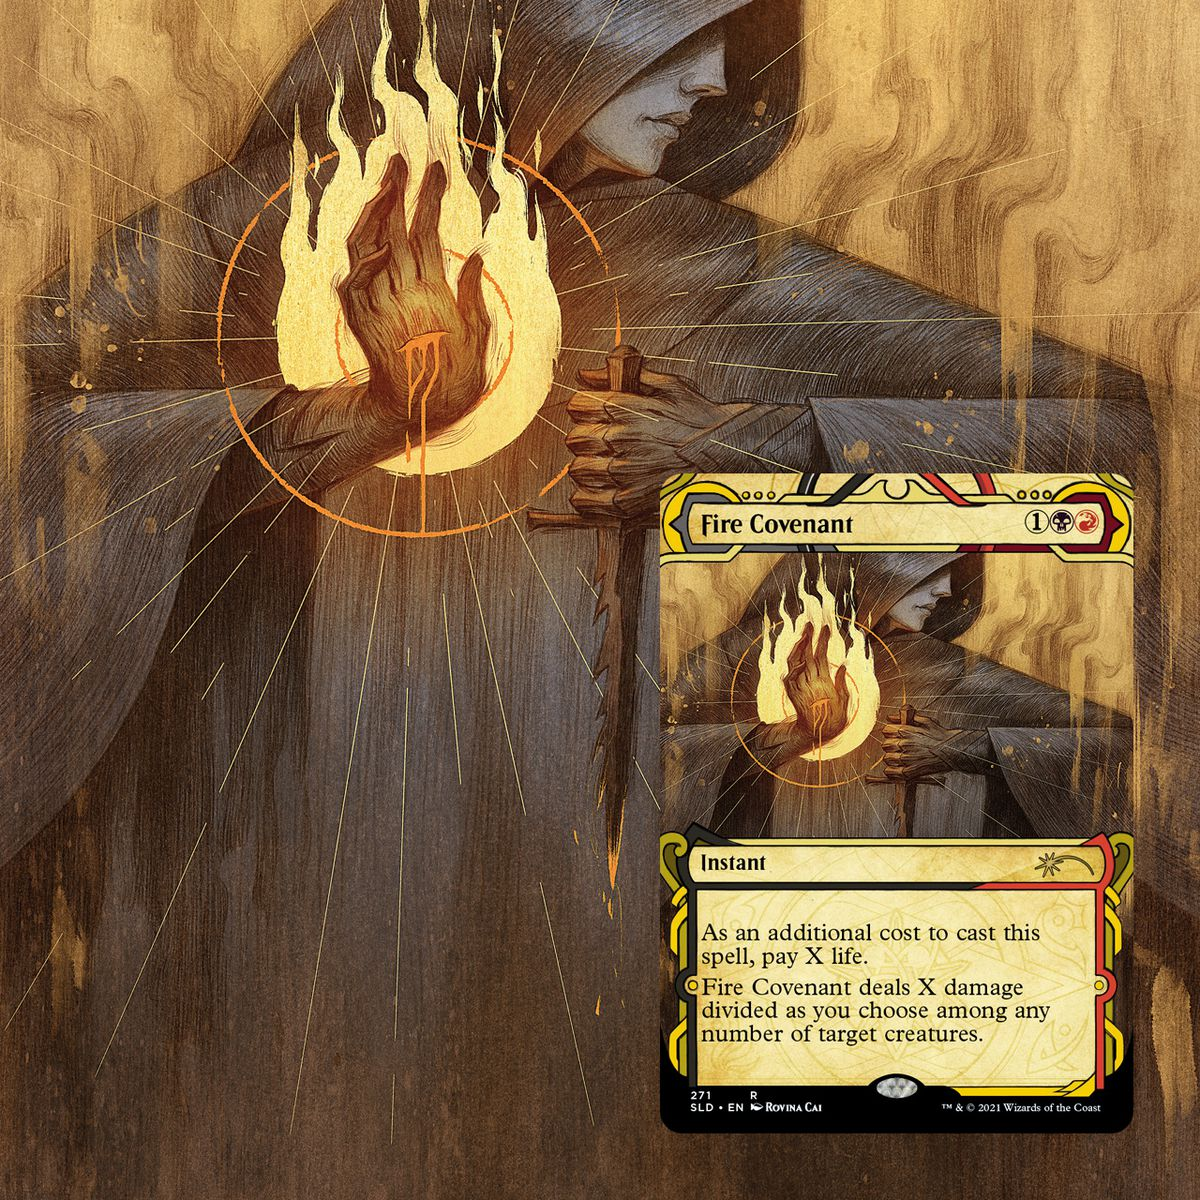 Fire Covenant, showing a woman holding a dagger casting a fire spell with her off hand. There is a cut on her palm.